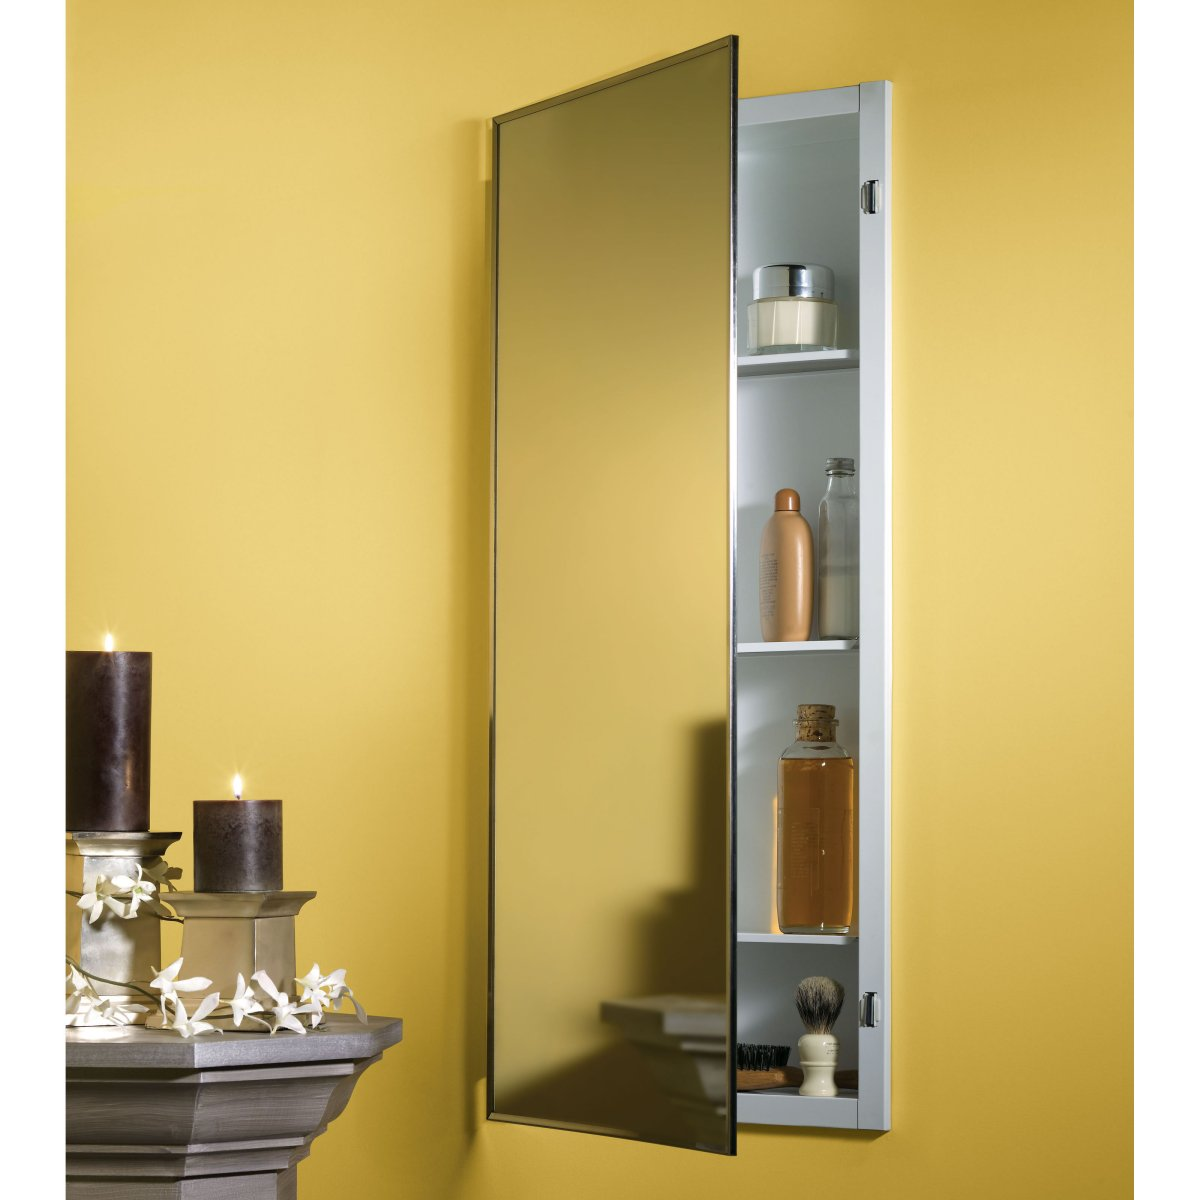 Etonnant Long Medicine Cabinet Design With Big Mirror. Medicine Cabinet Mounted Wall